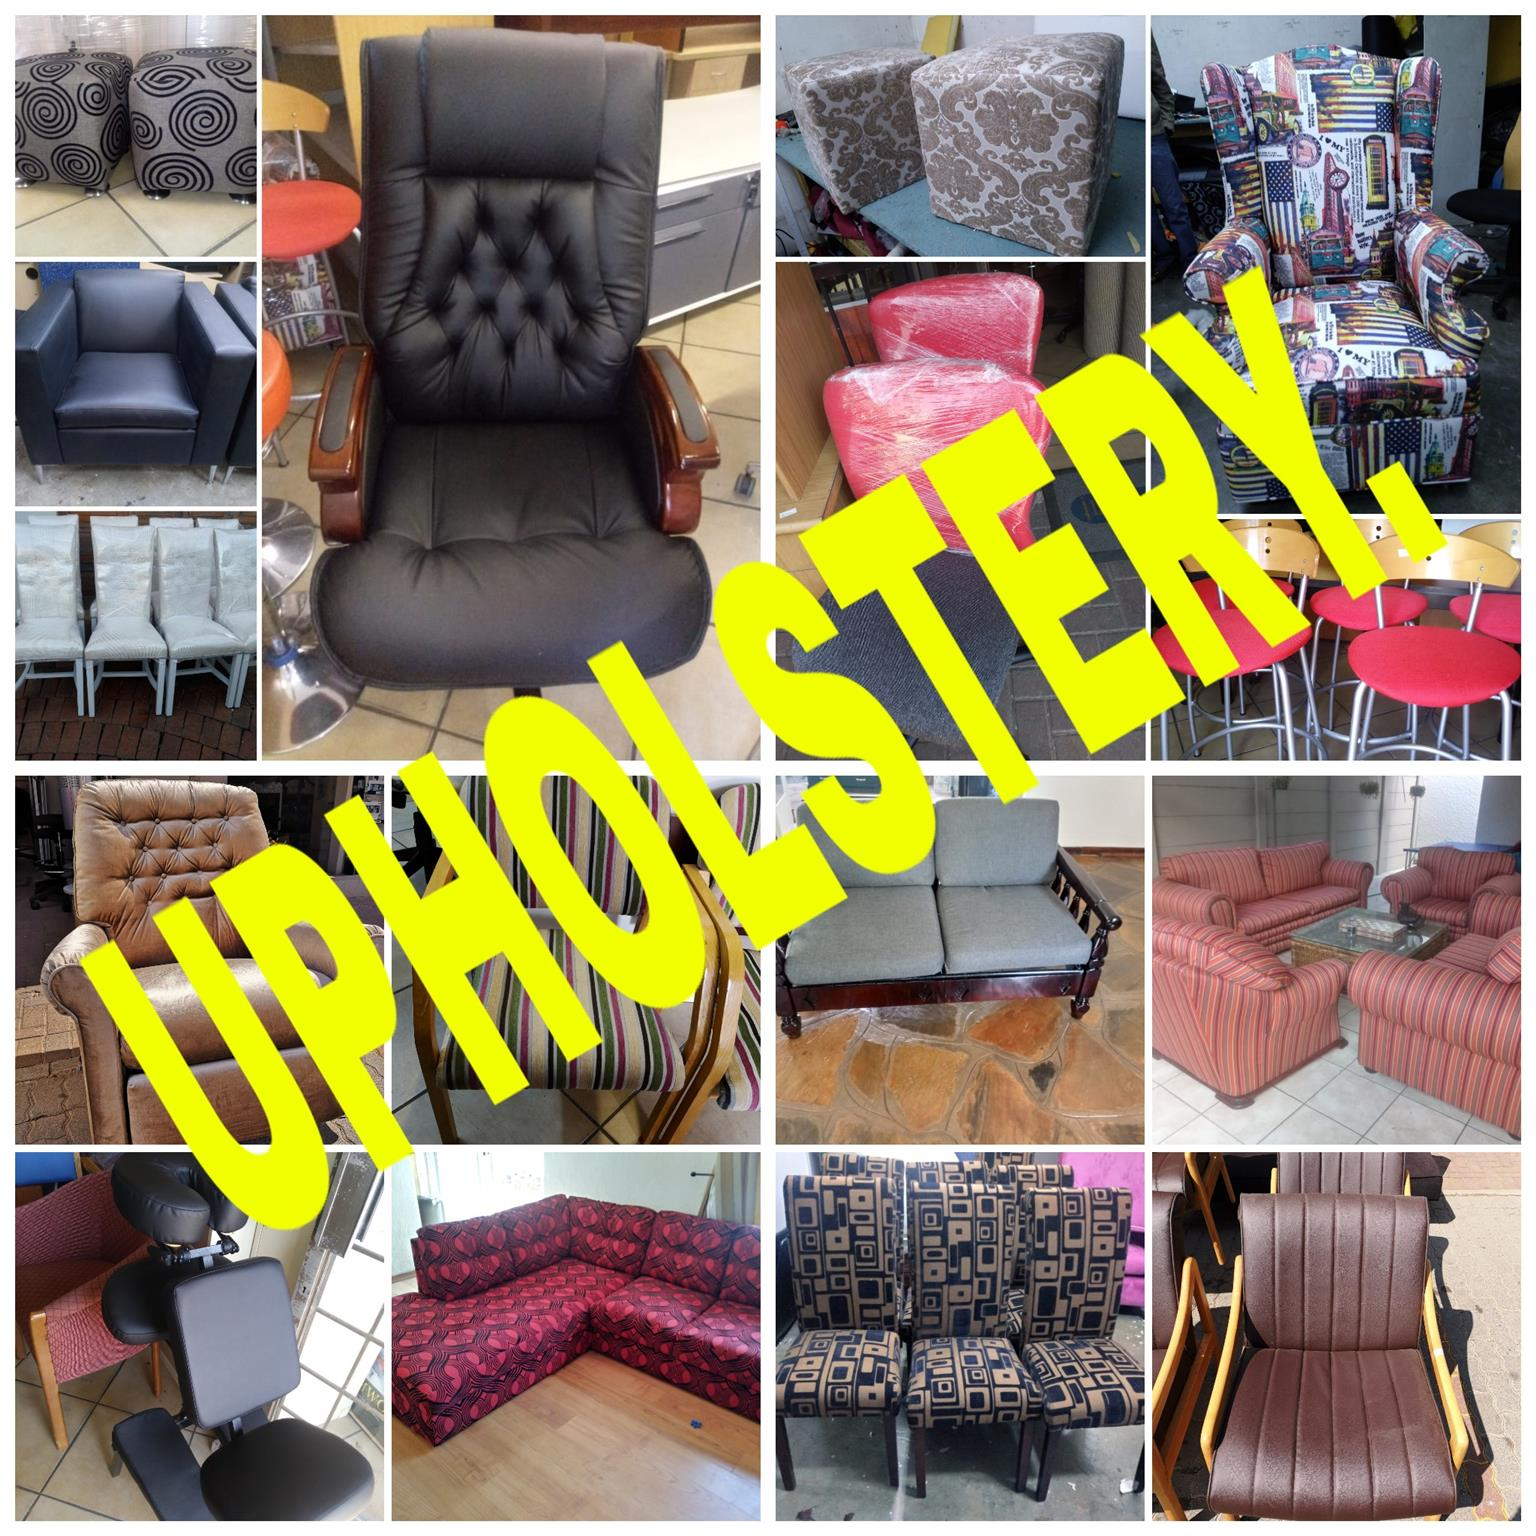 Re upholstery of couches and chairs